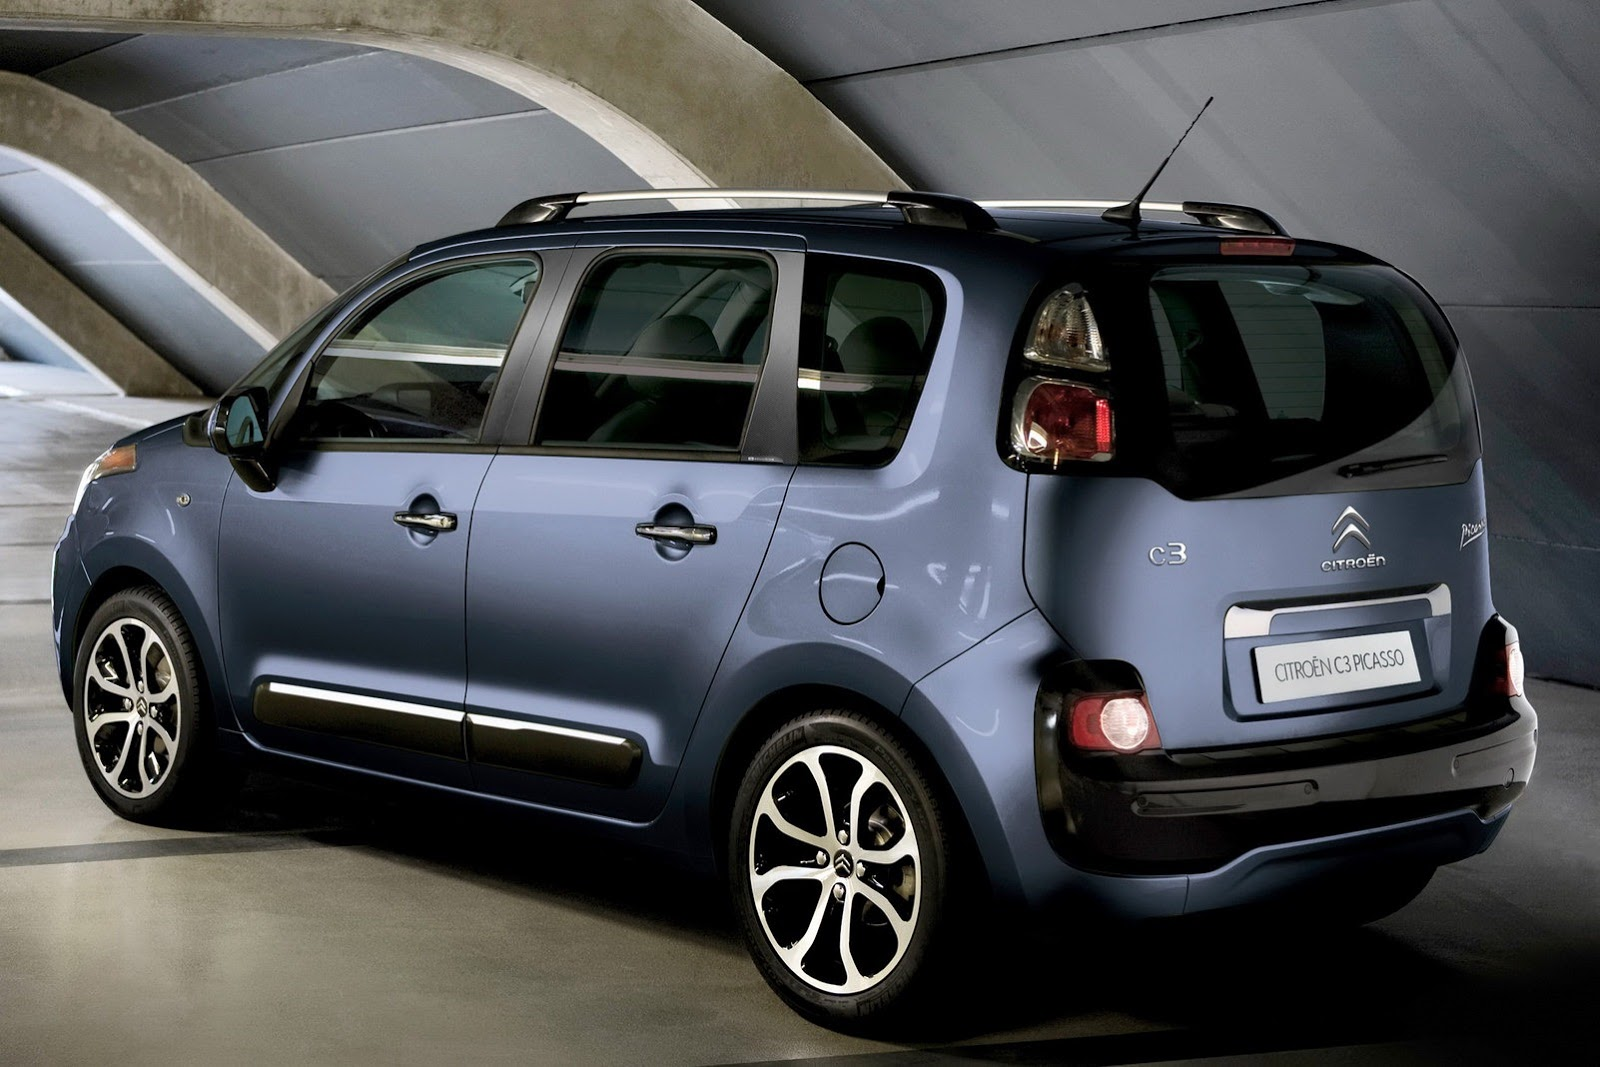 Mildly Refreshed Citroen C3 Picasso Gets Uk Pricing Photo Gallery Desktop Backgrounds